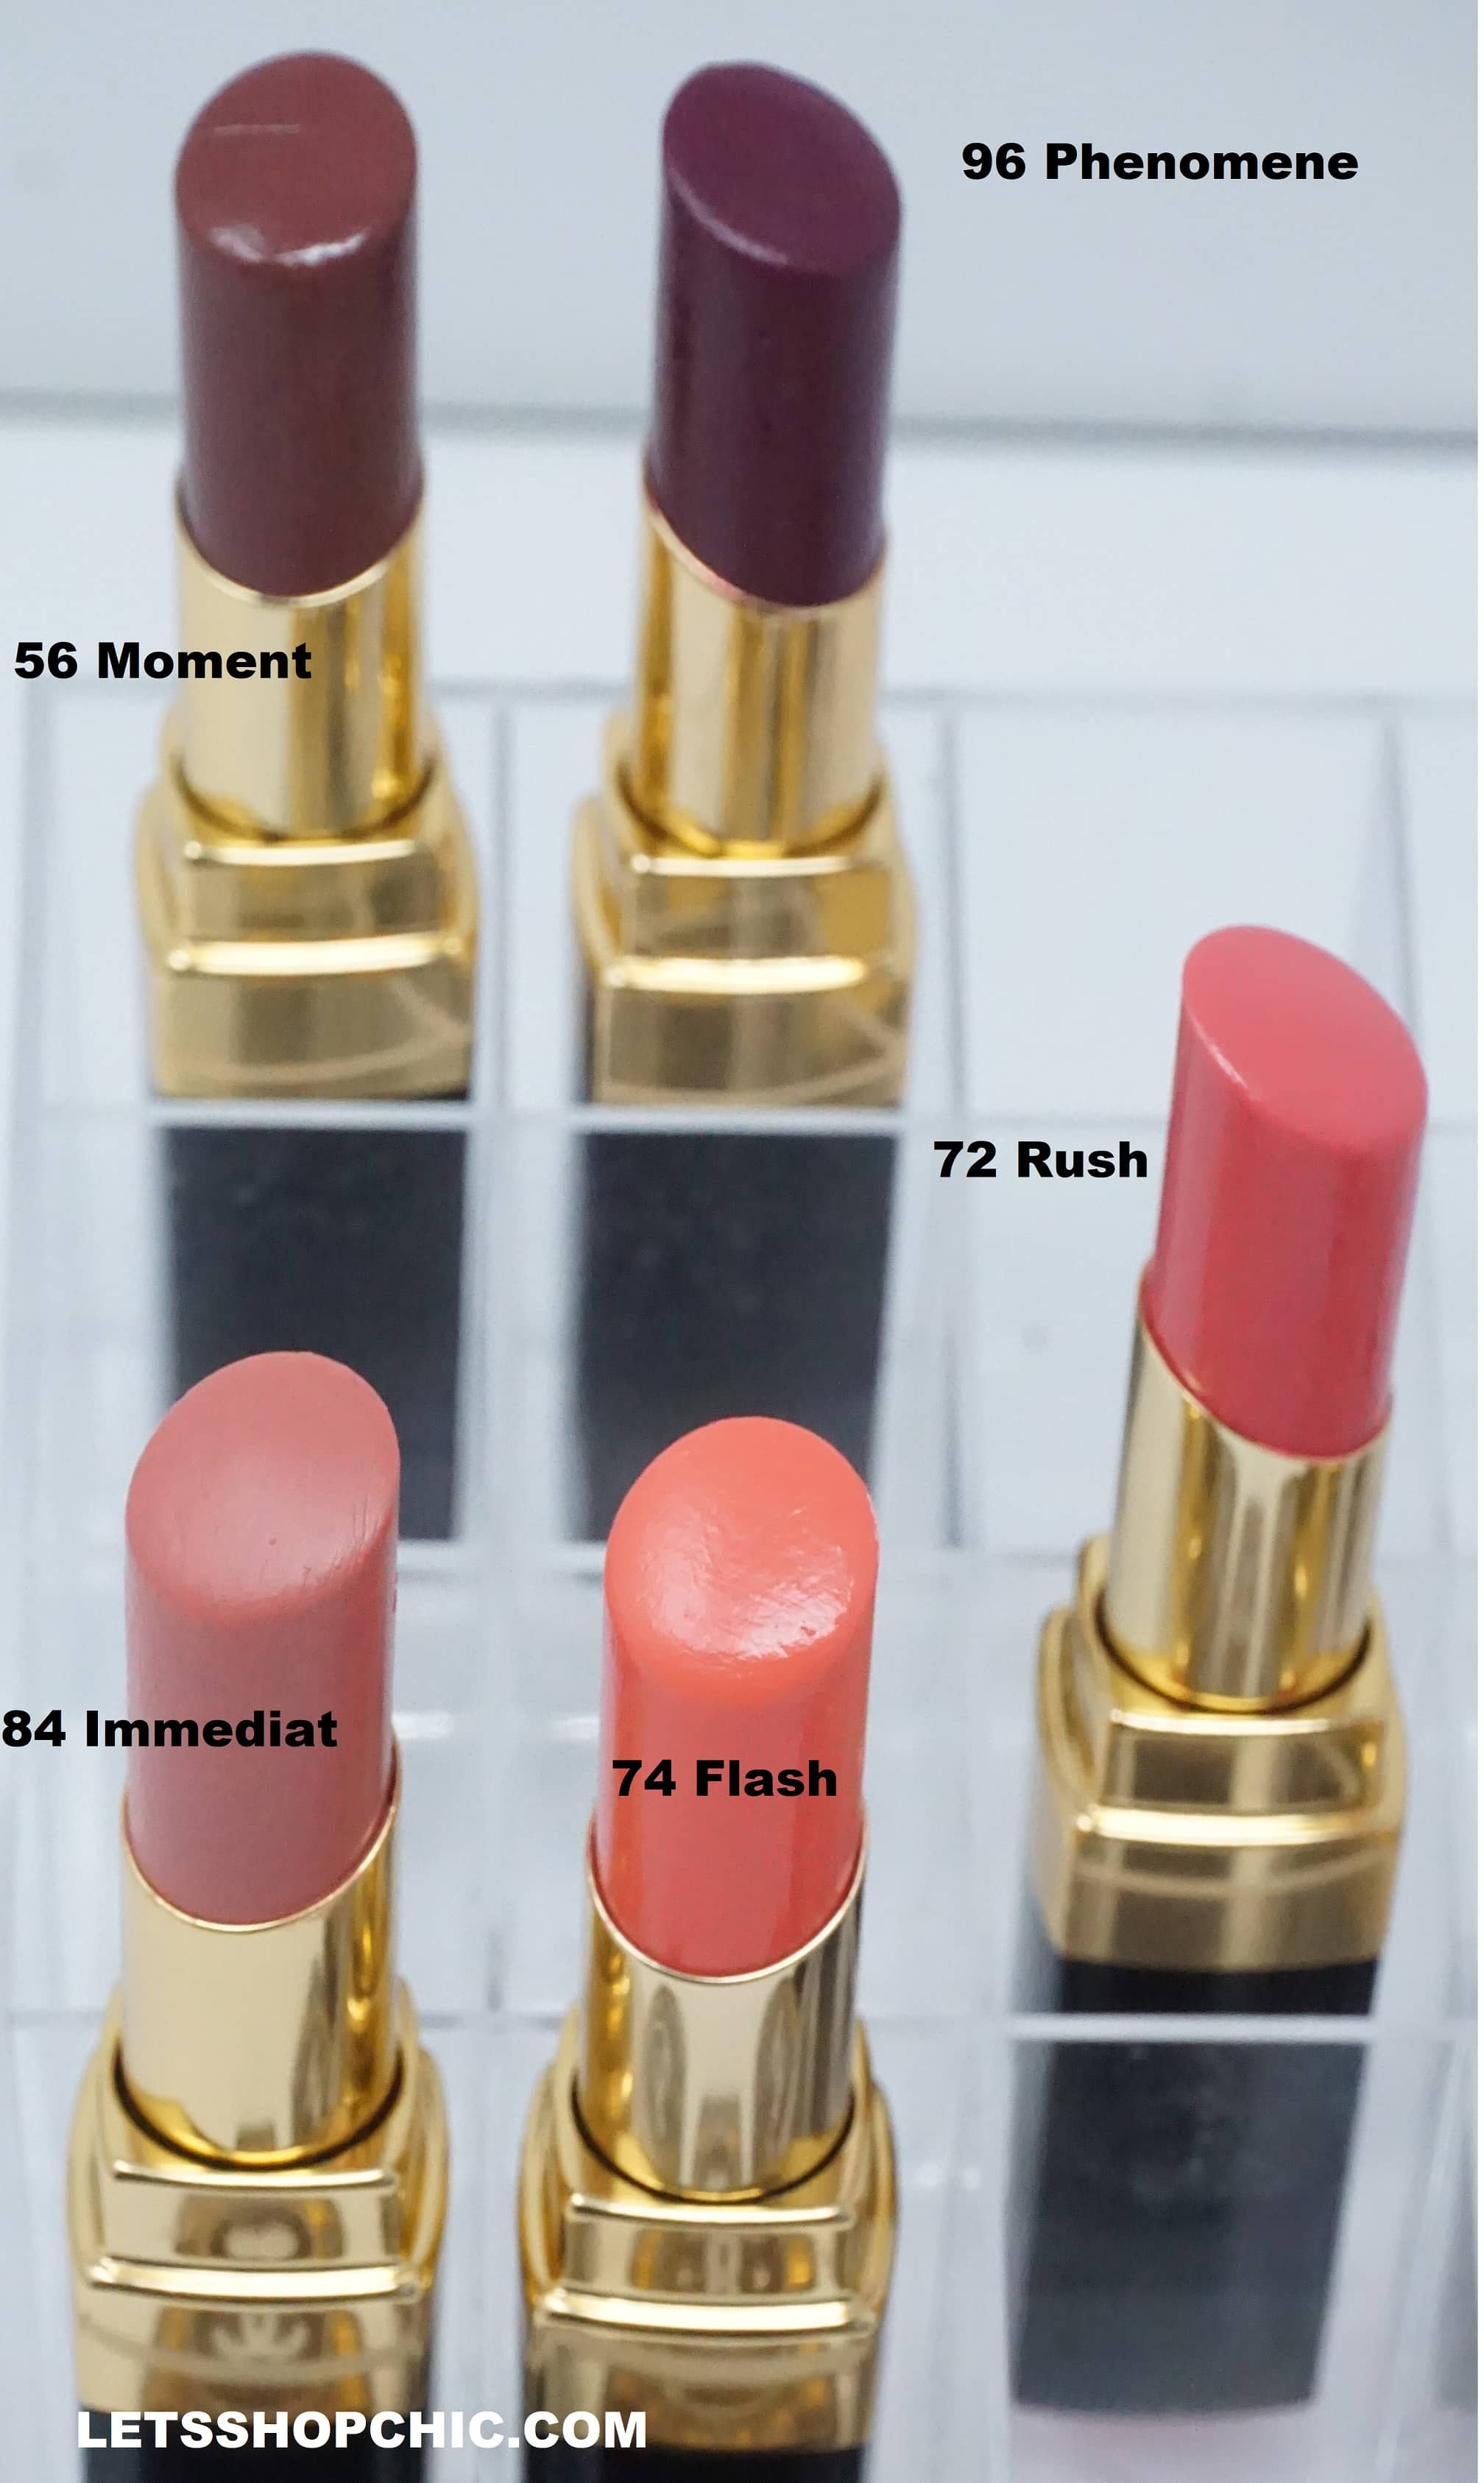 Chanel Rouge Coco Flash Lipstick shade